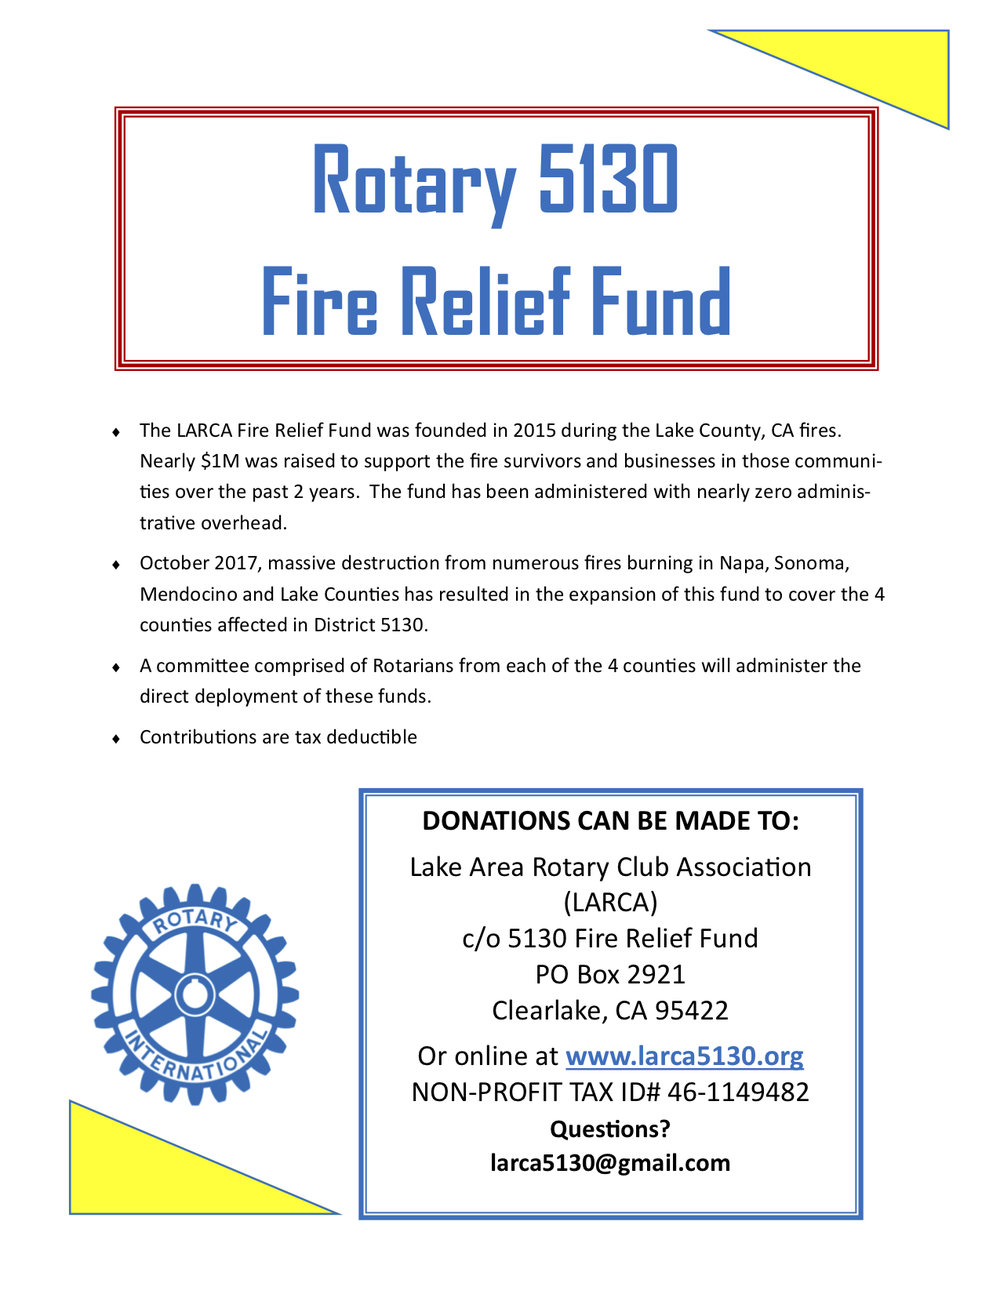 Rotary 5130 Fire Relief Fund.jpg